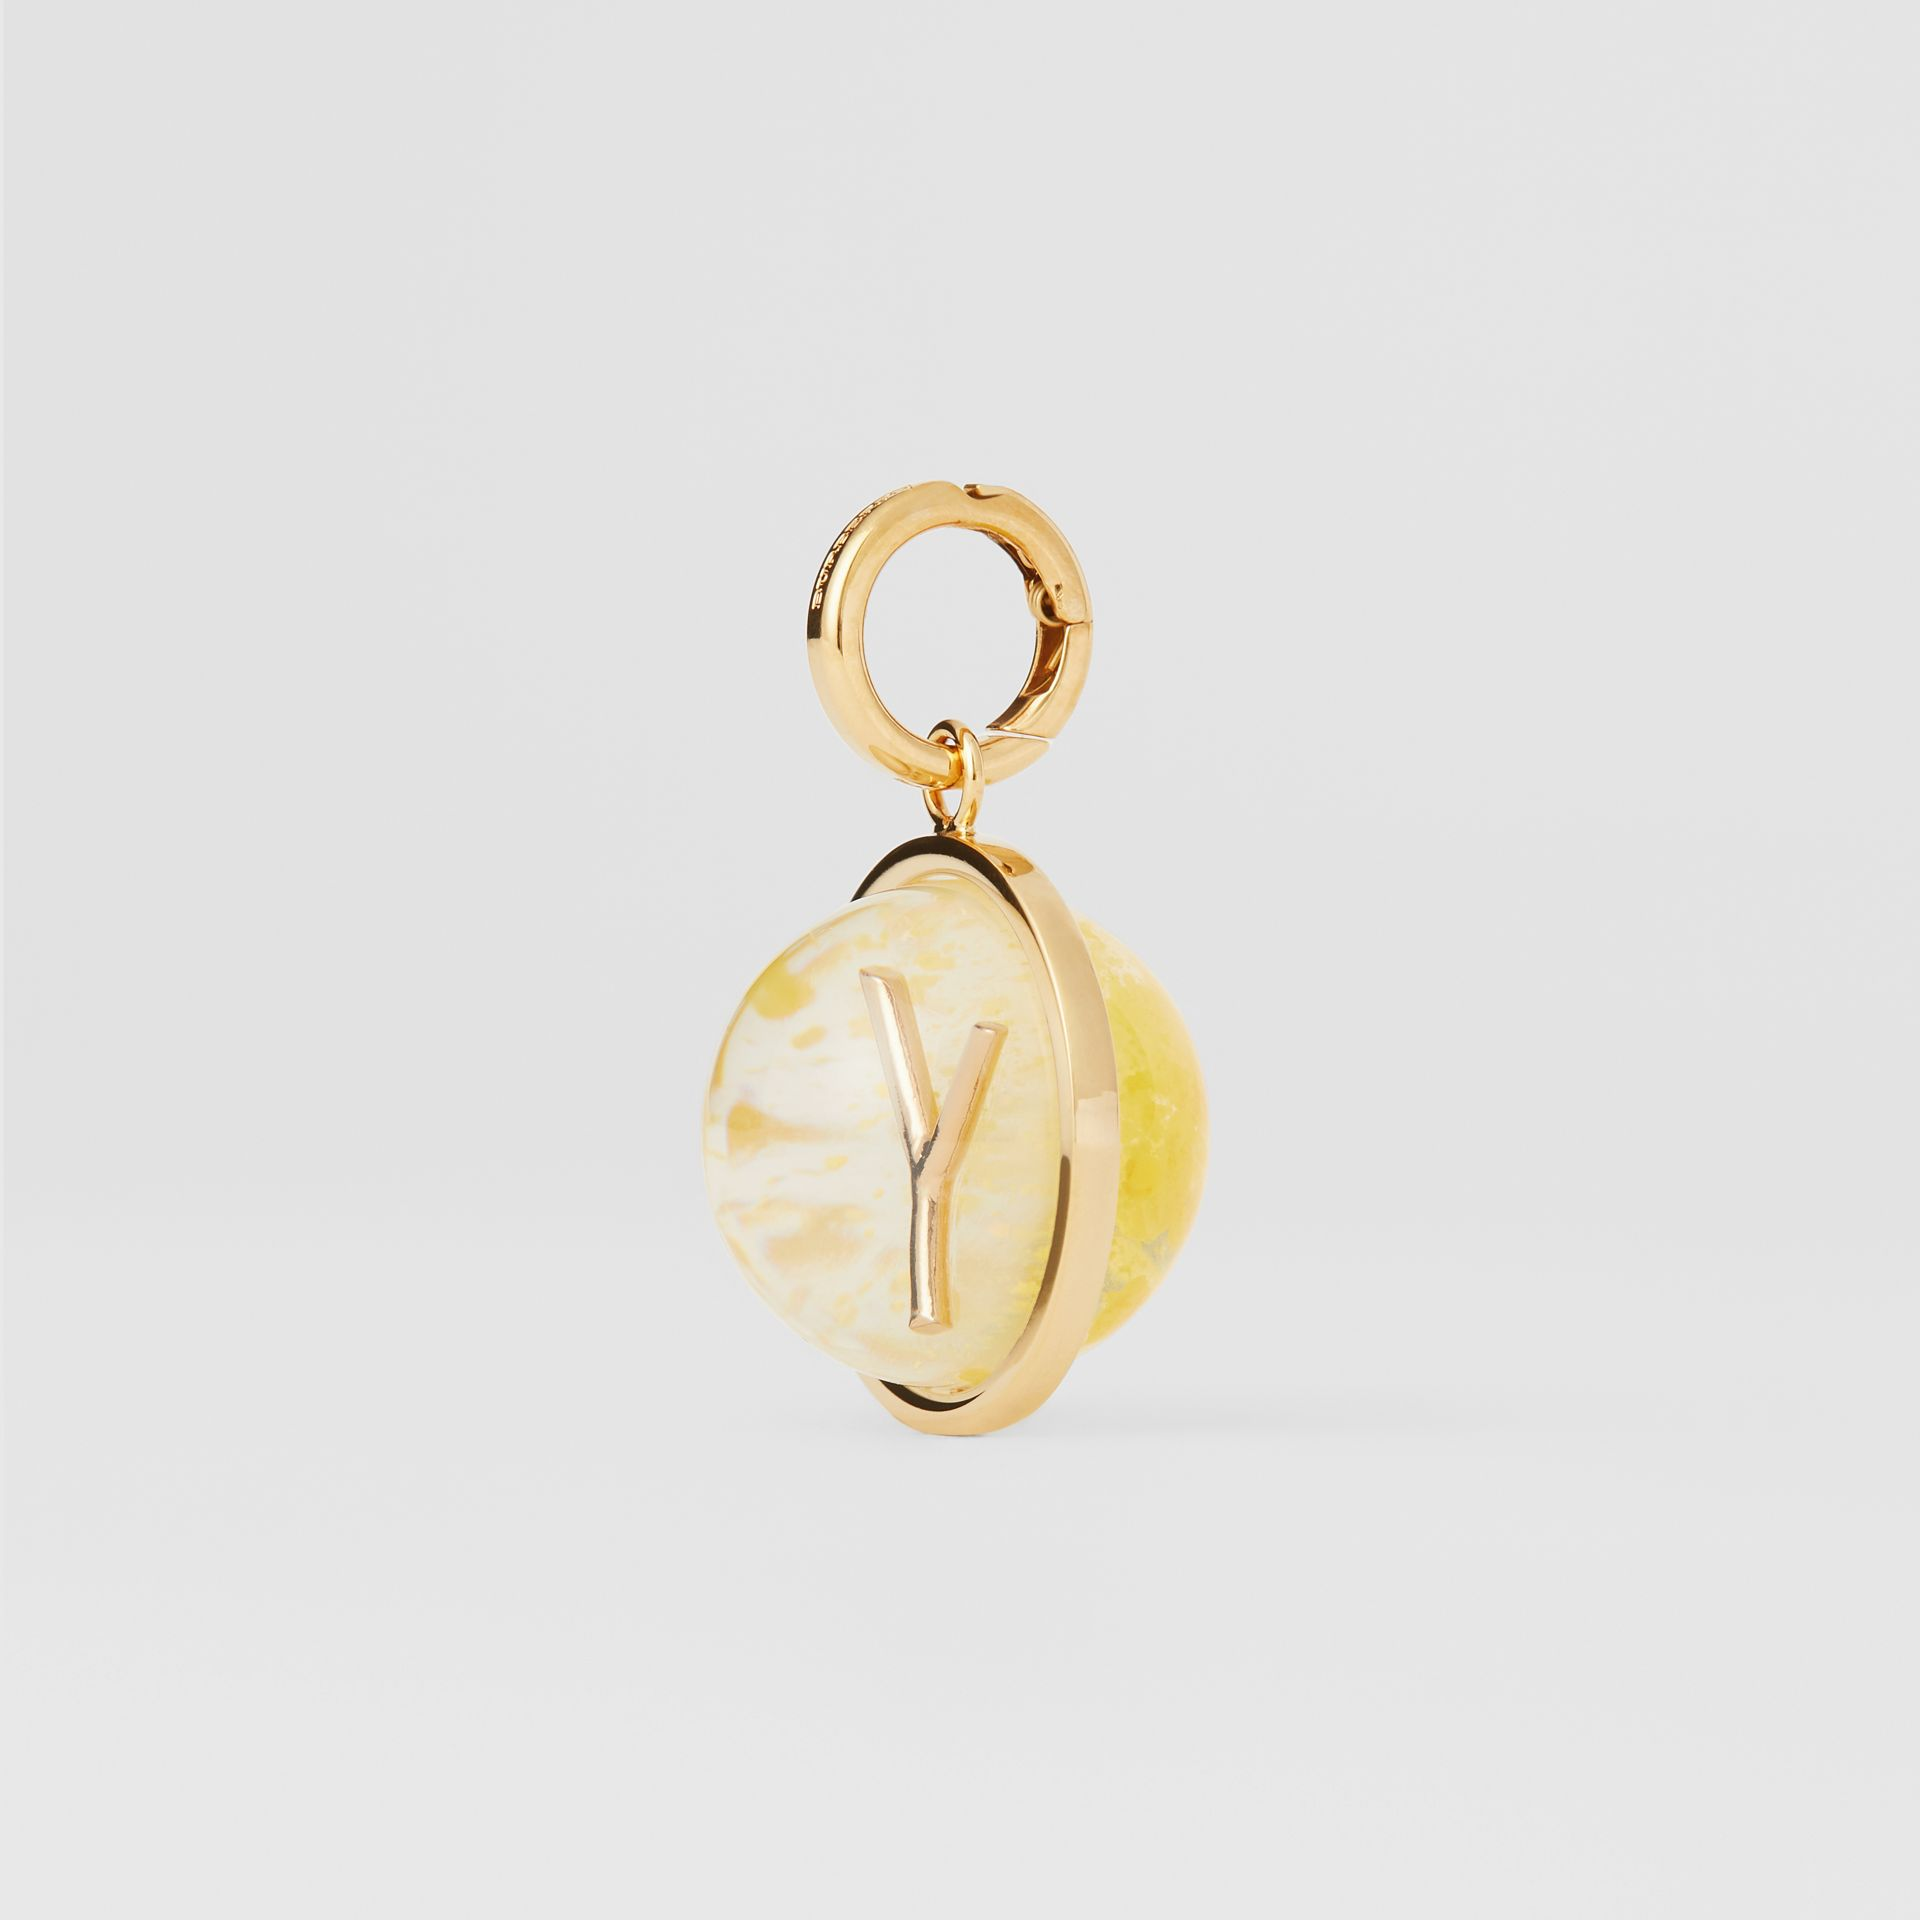 Marbled Resin 'Y' Alphabet Charm in Gold/mimosa - Women | Burberry - gallery image 5